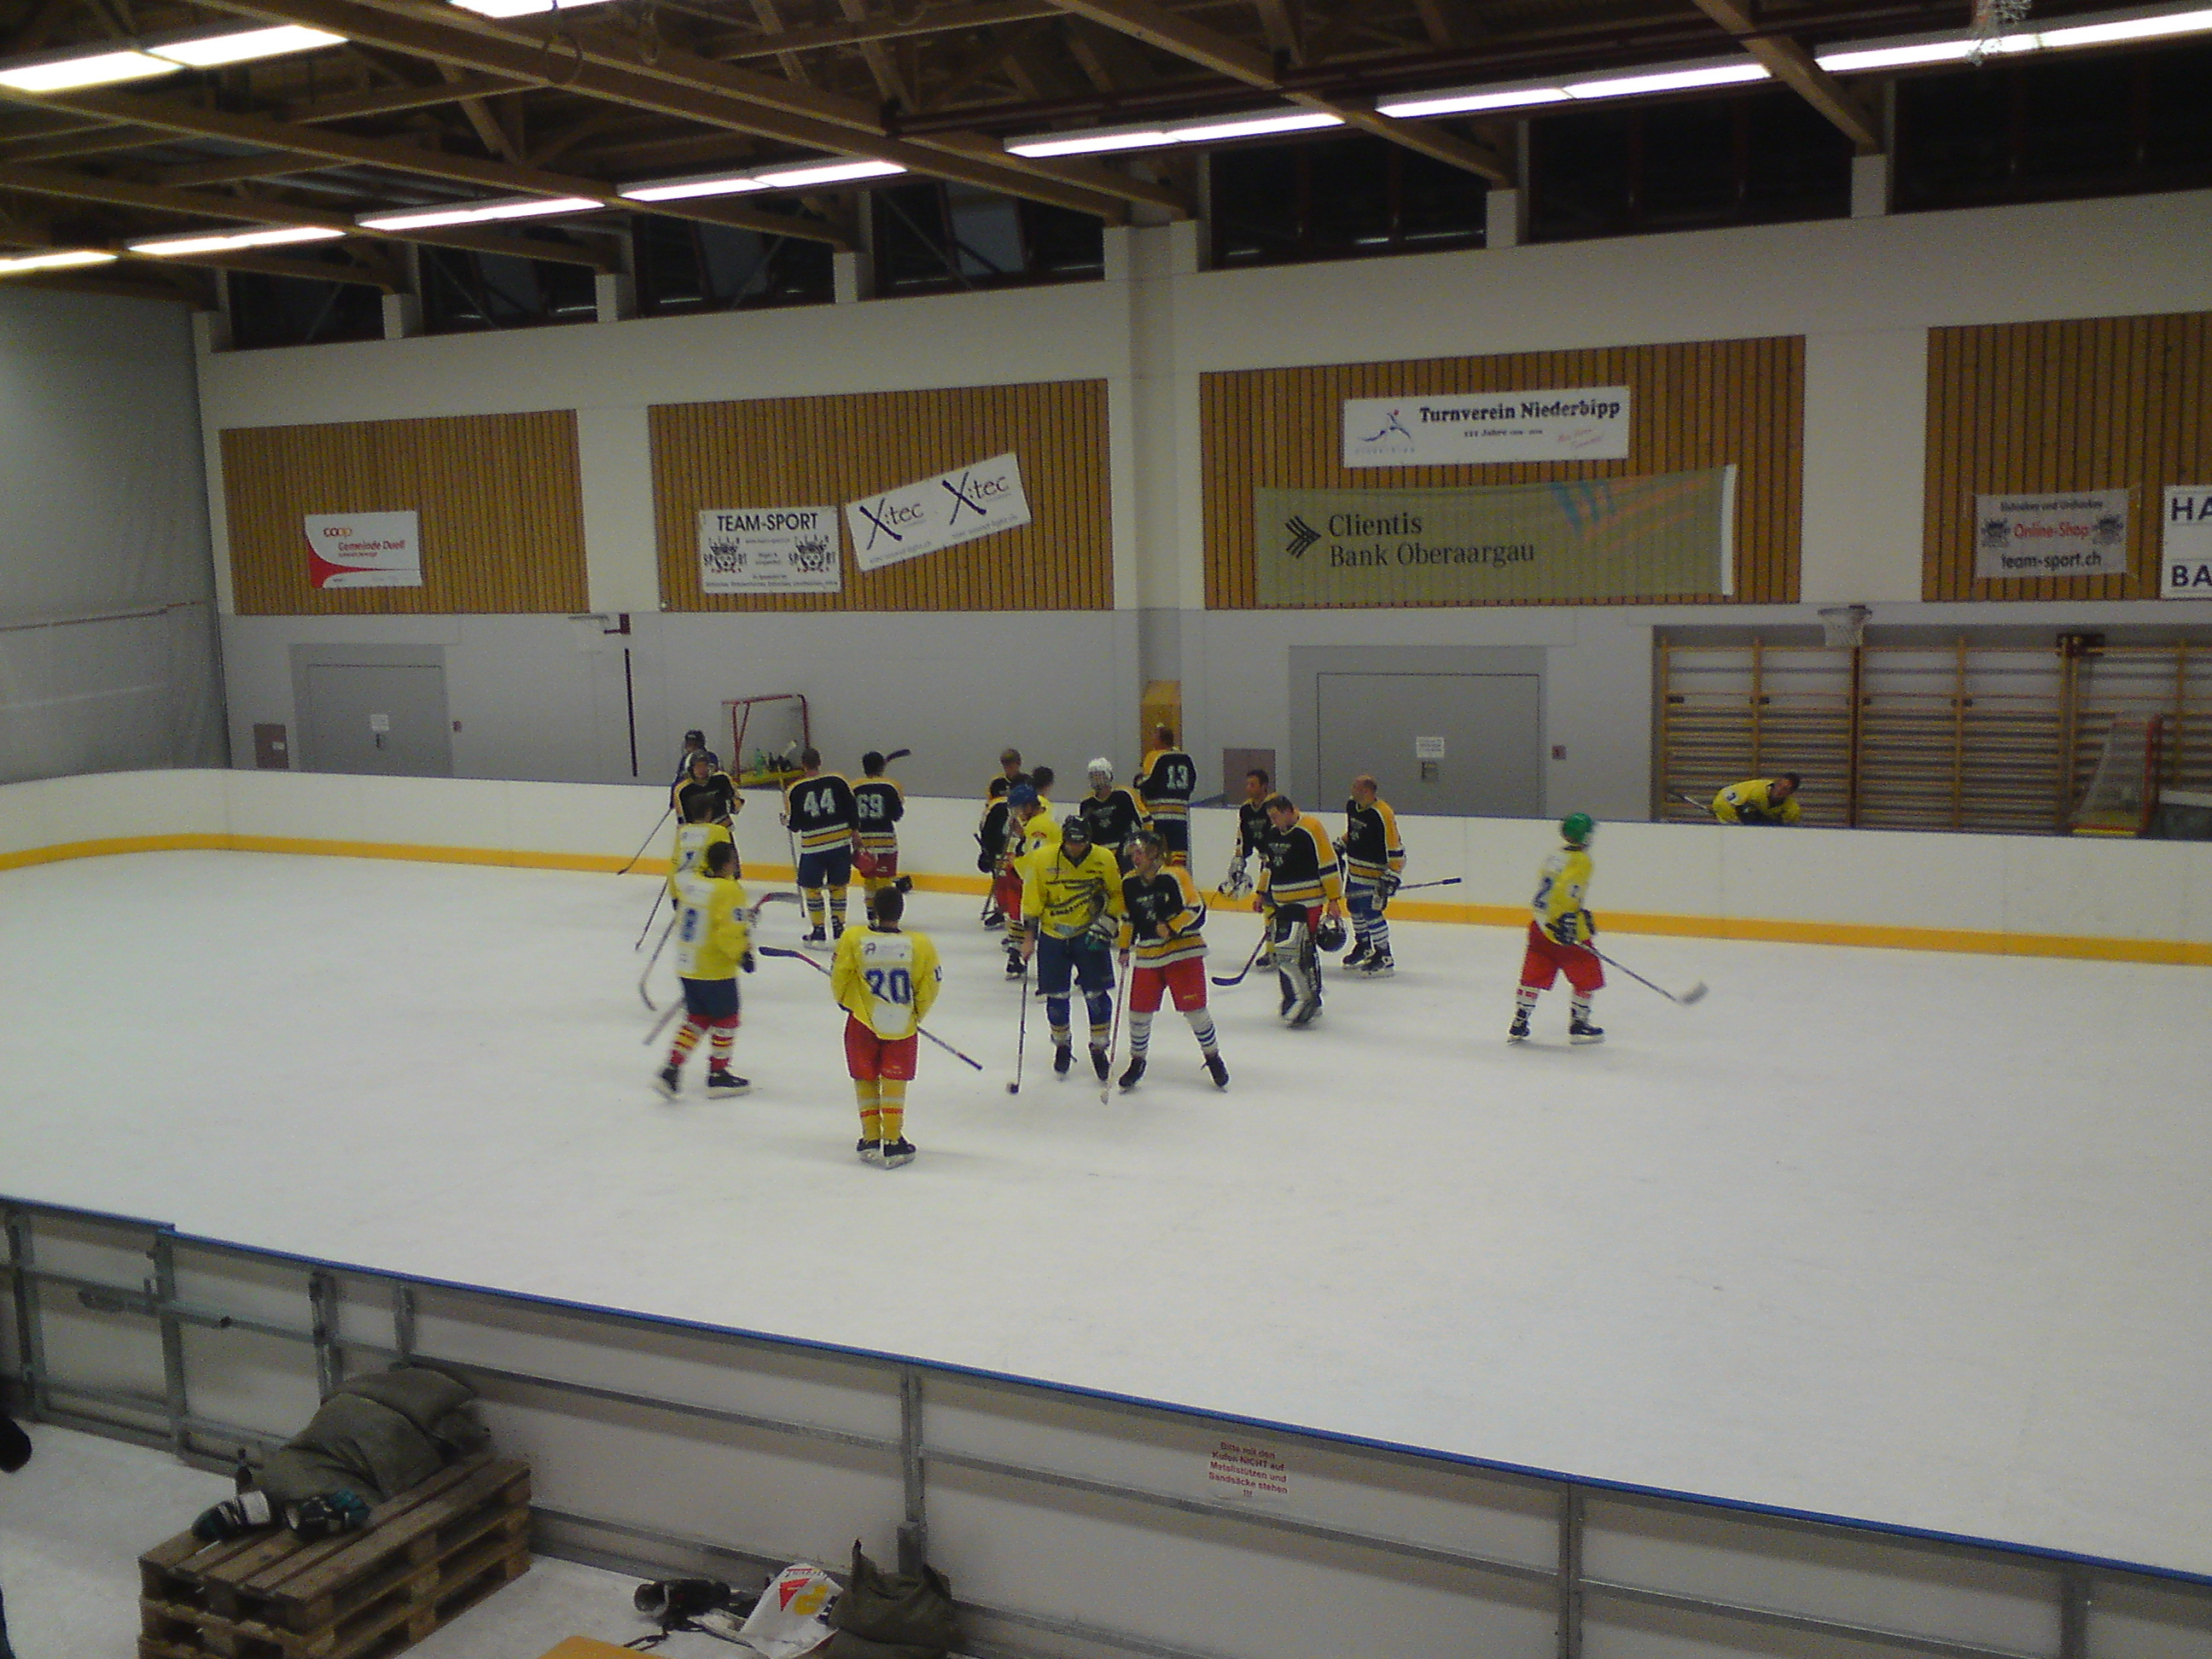 SynthIce Arena 2010